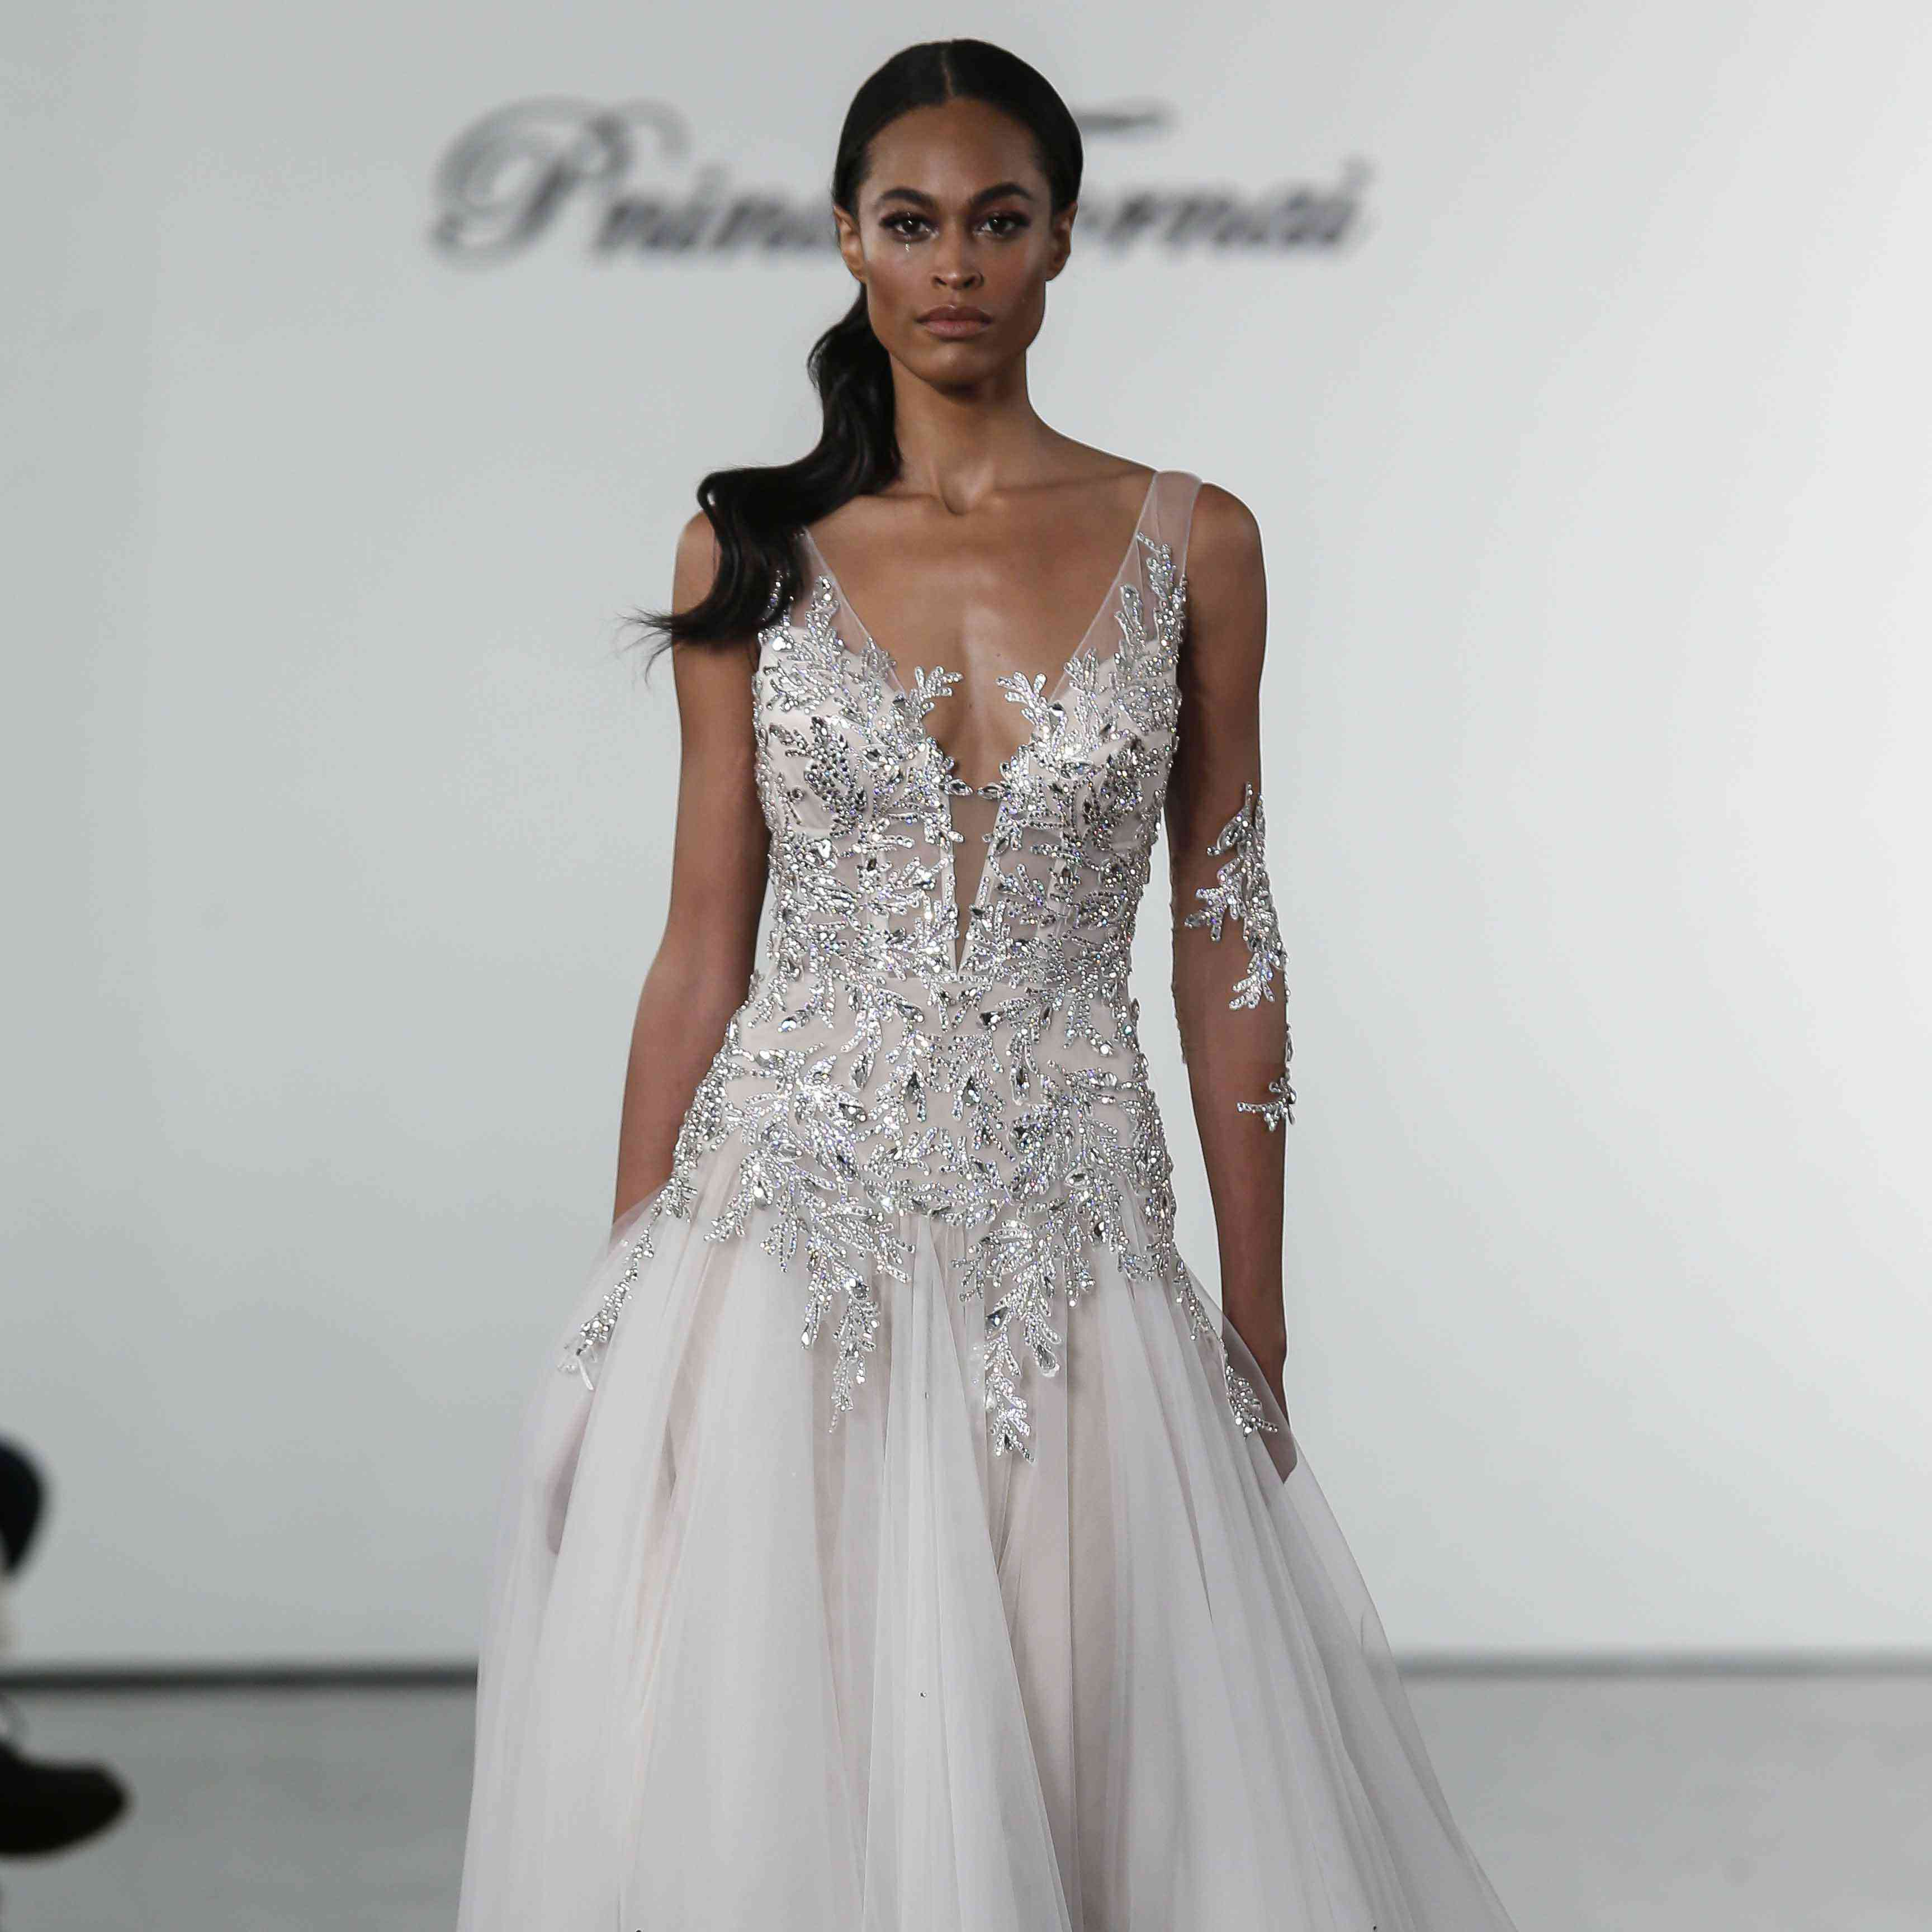 Pnina Tornai 2019 Wedding Dresses: Pnina Tornai Bridal Fall 2019